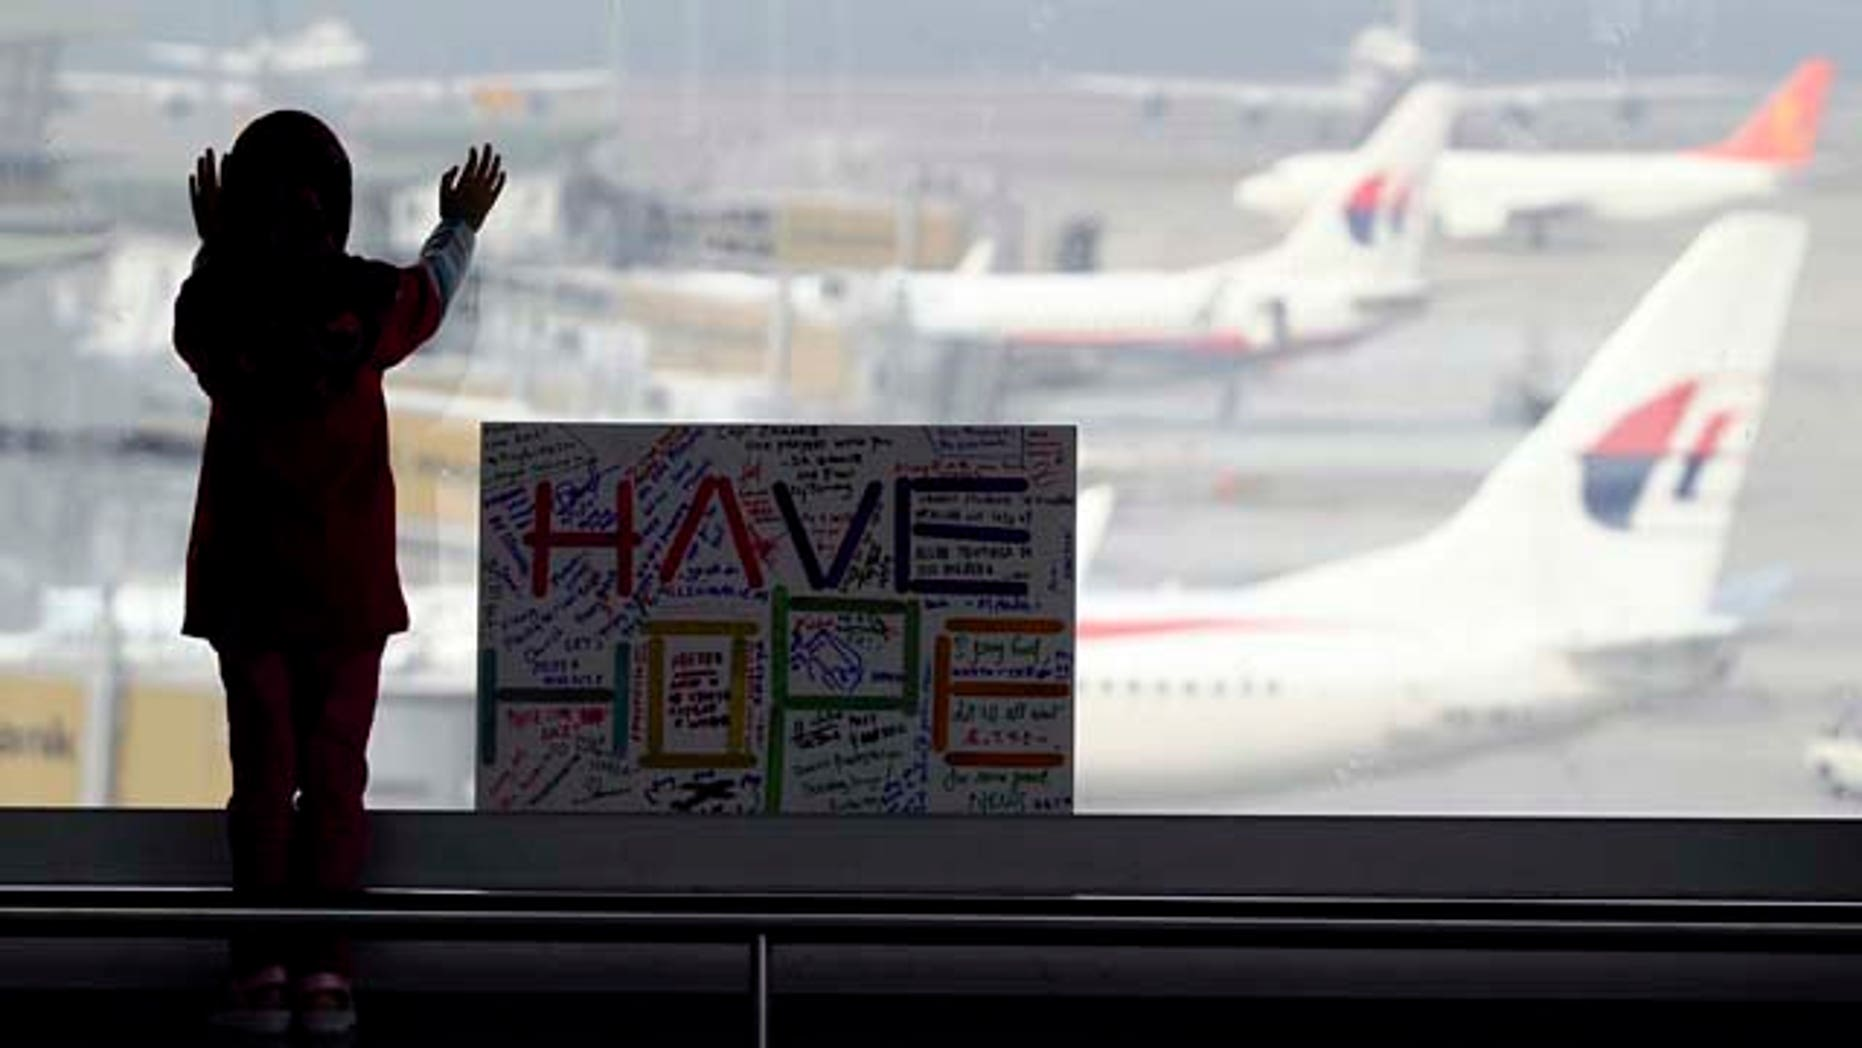 FILE - In this March 10, 2014 file photo, a woman looks at Malaysian planes next to a sign made and written by the public, wishing for the safe return of passengers aboard the missing Malaysia Airlines Flight 370 plane at Kuala Lumpur International Airport in Sepang, Malaysia. (AP Photo/Daniel Chan, File)